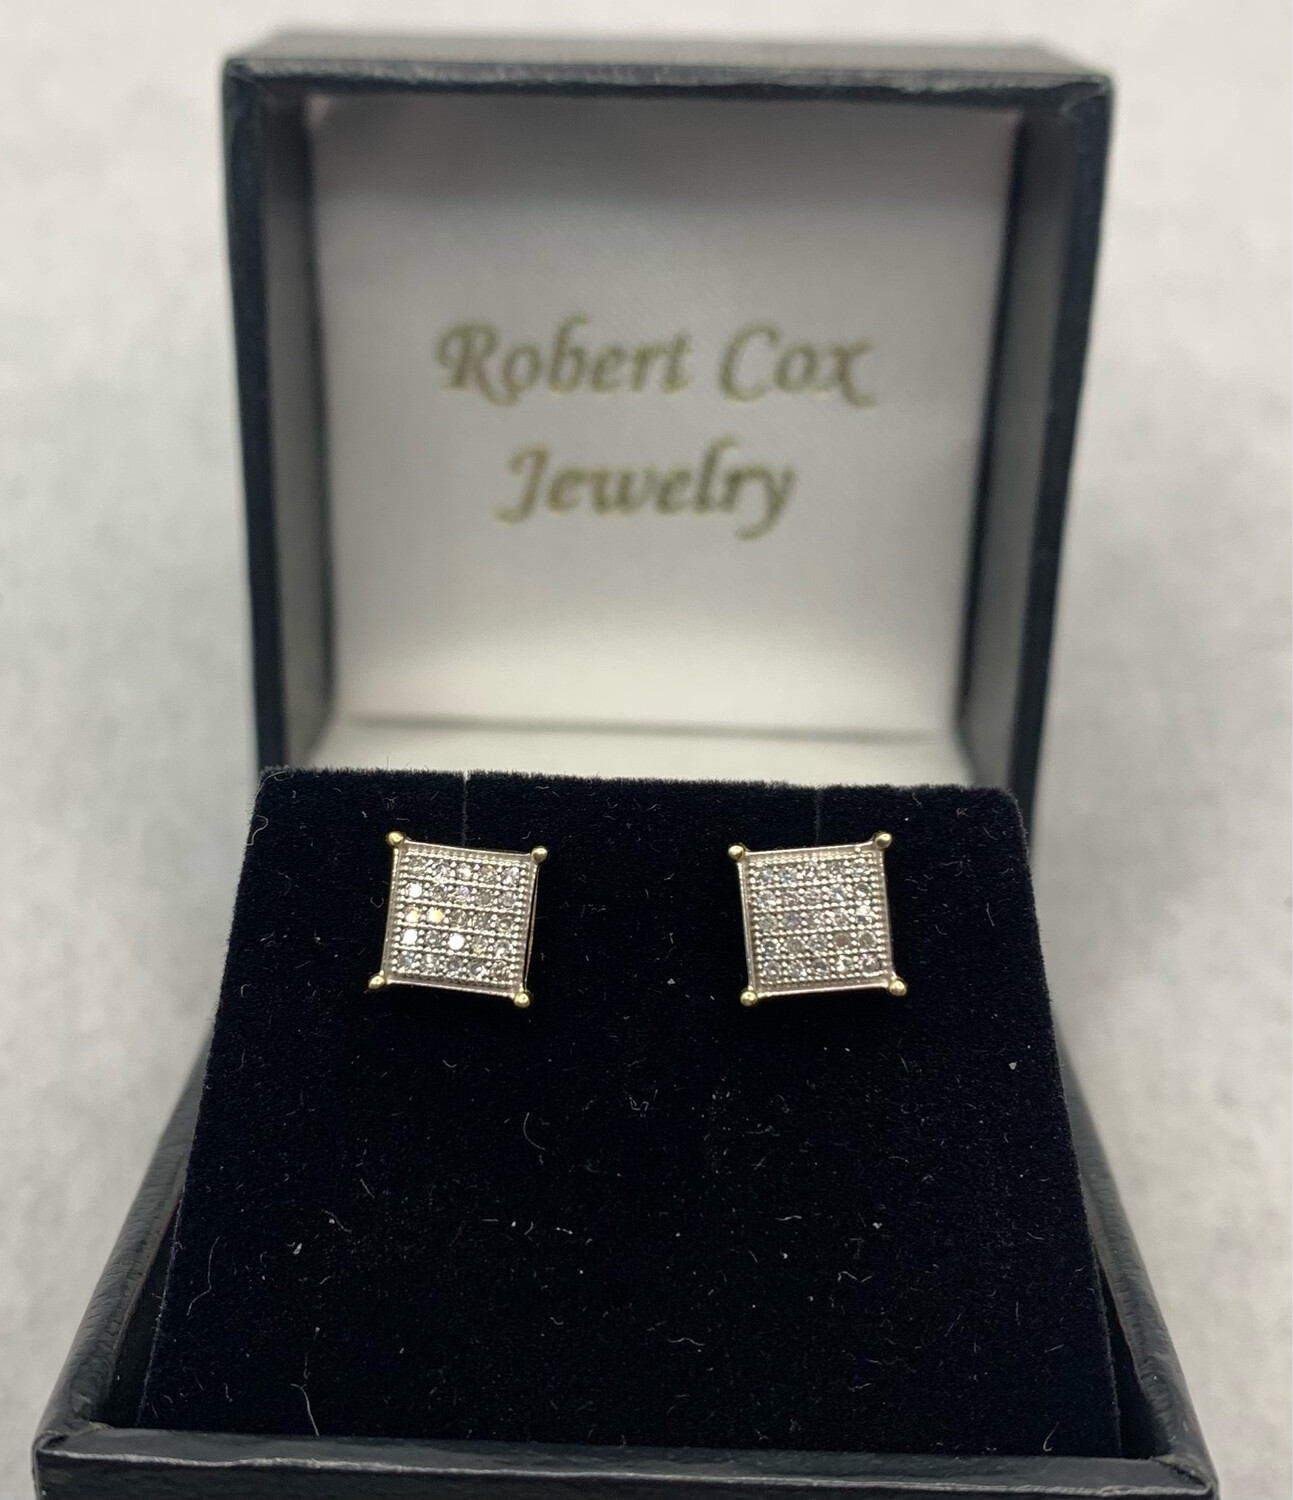 Shimmering 15 pt. Total Weight Diamond Post Earrings set in 10K Yellow Gold